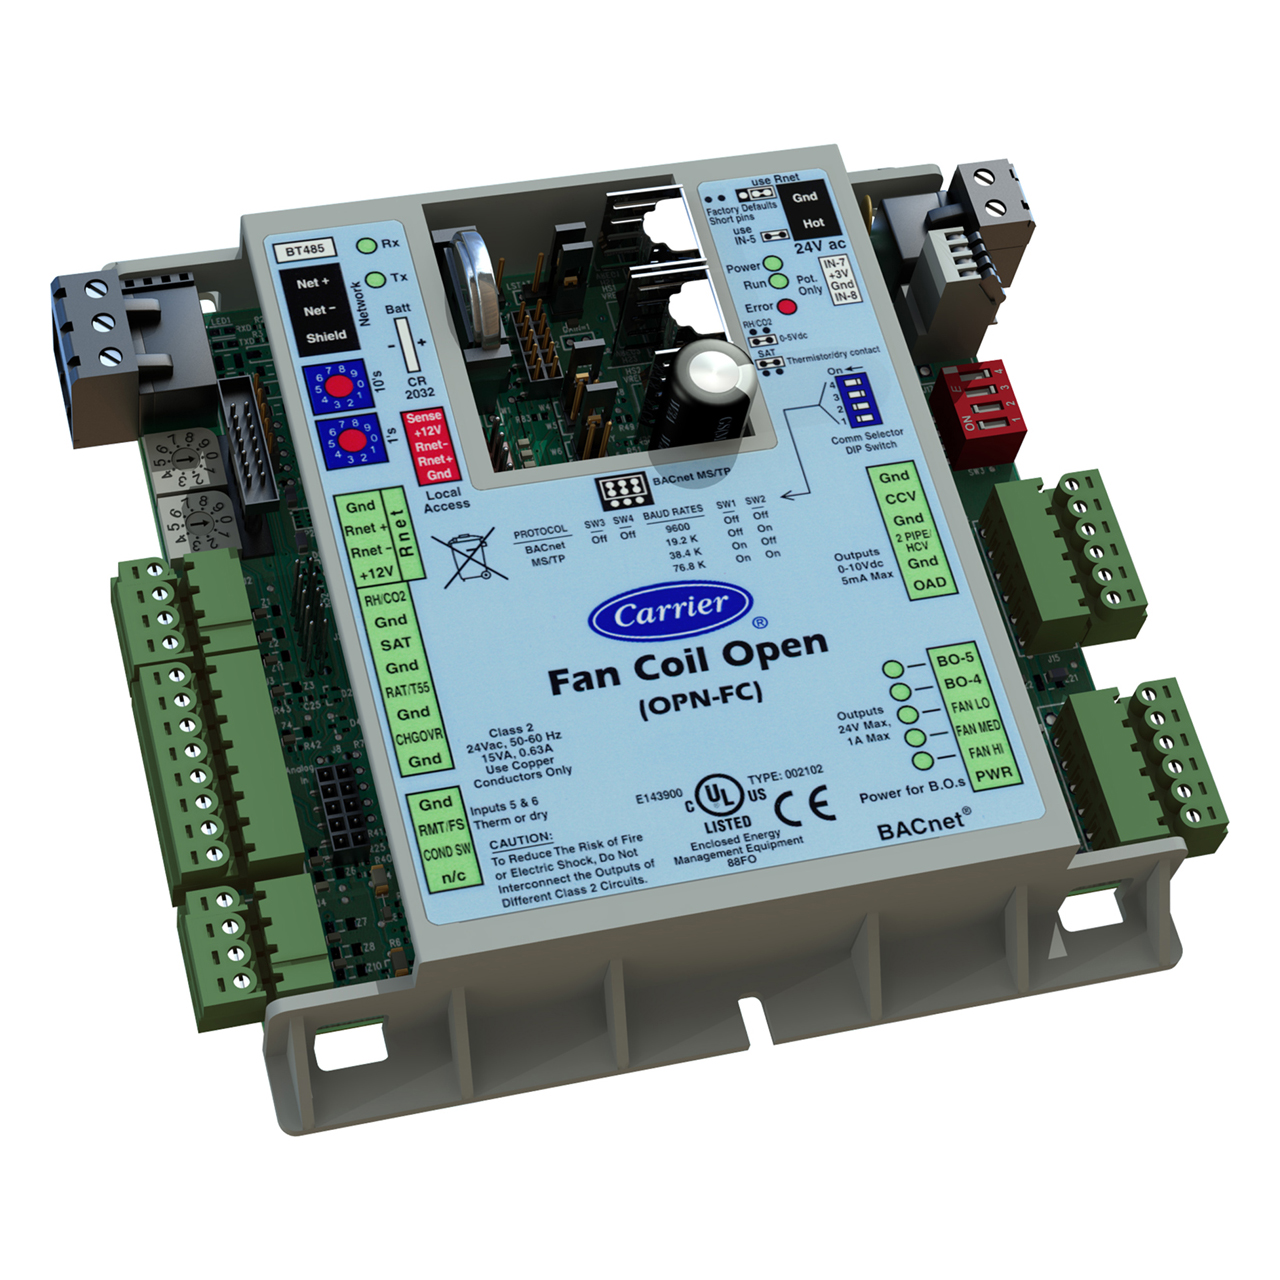 carrier-OPN-FC-ivu-fan-coil-open-product-integrated-controller